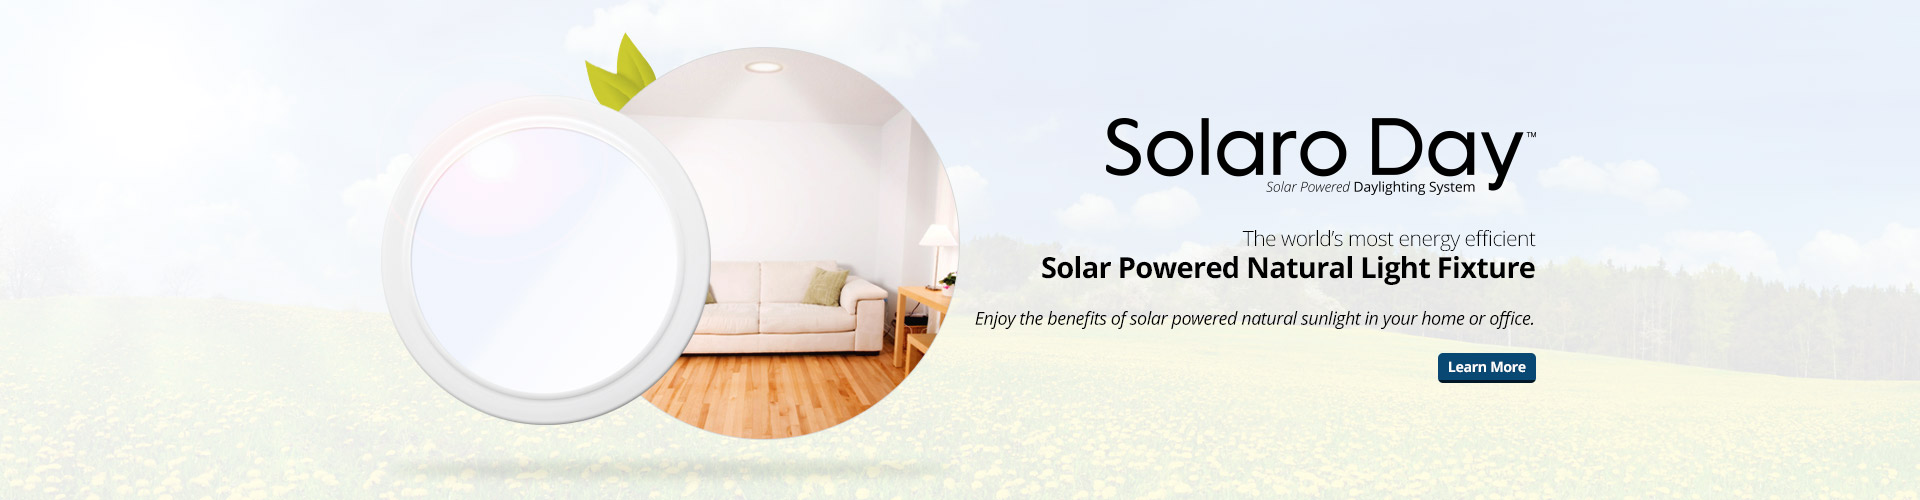 Solaro-Energy-Solaro-Day-Solar-Lighting-Home